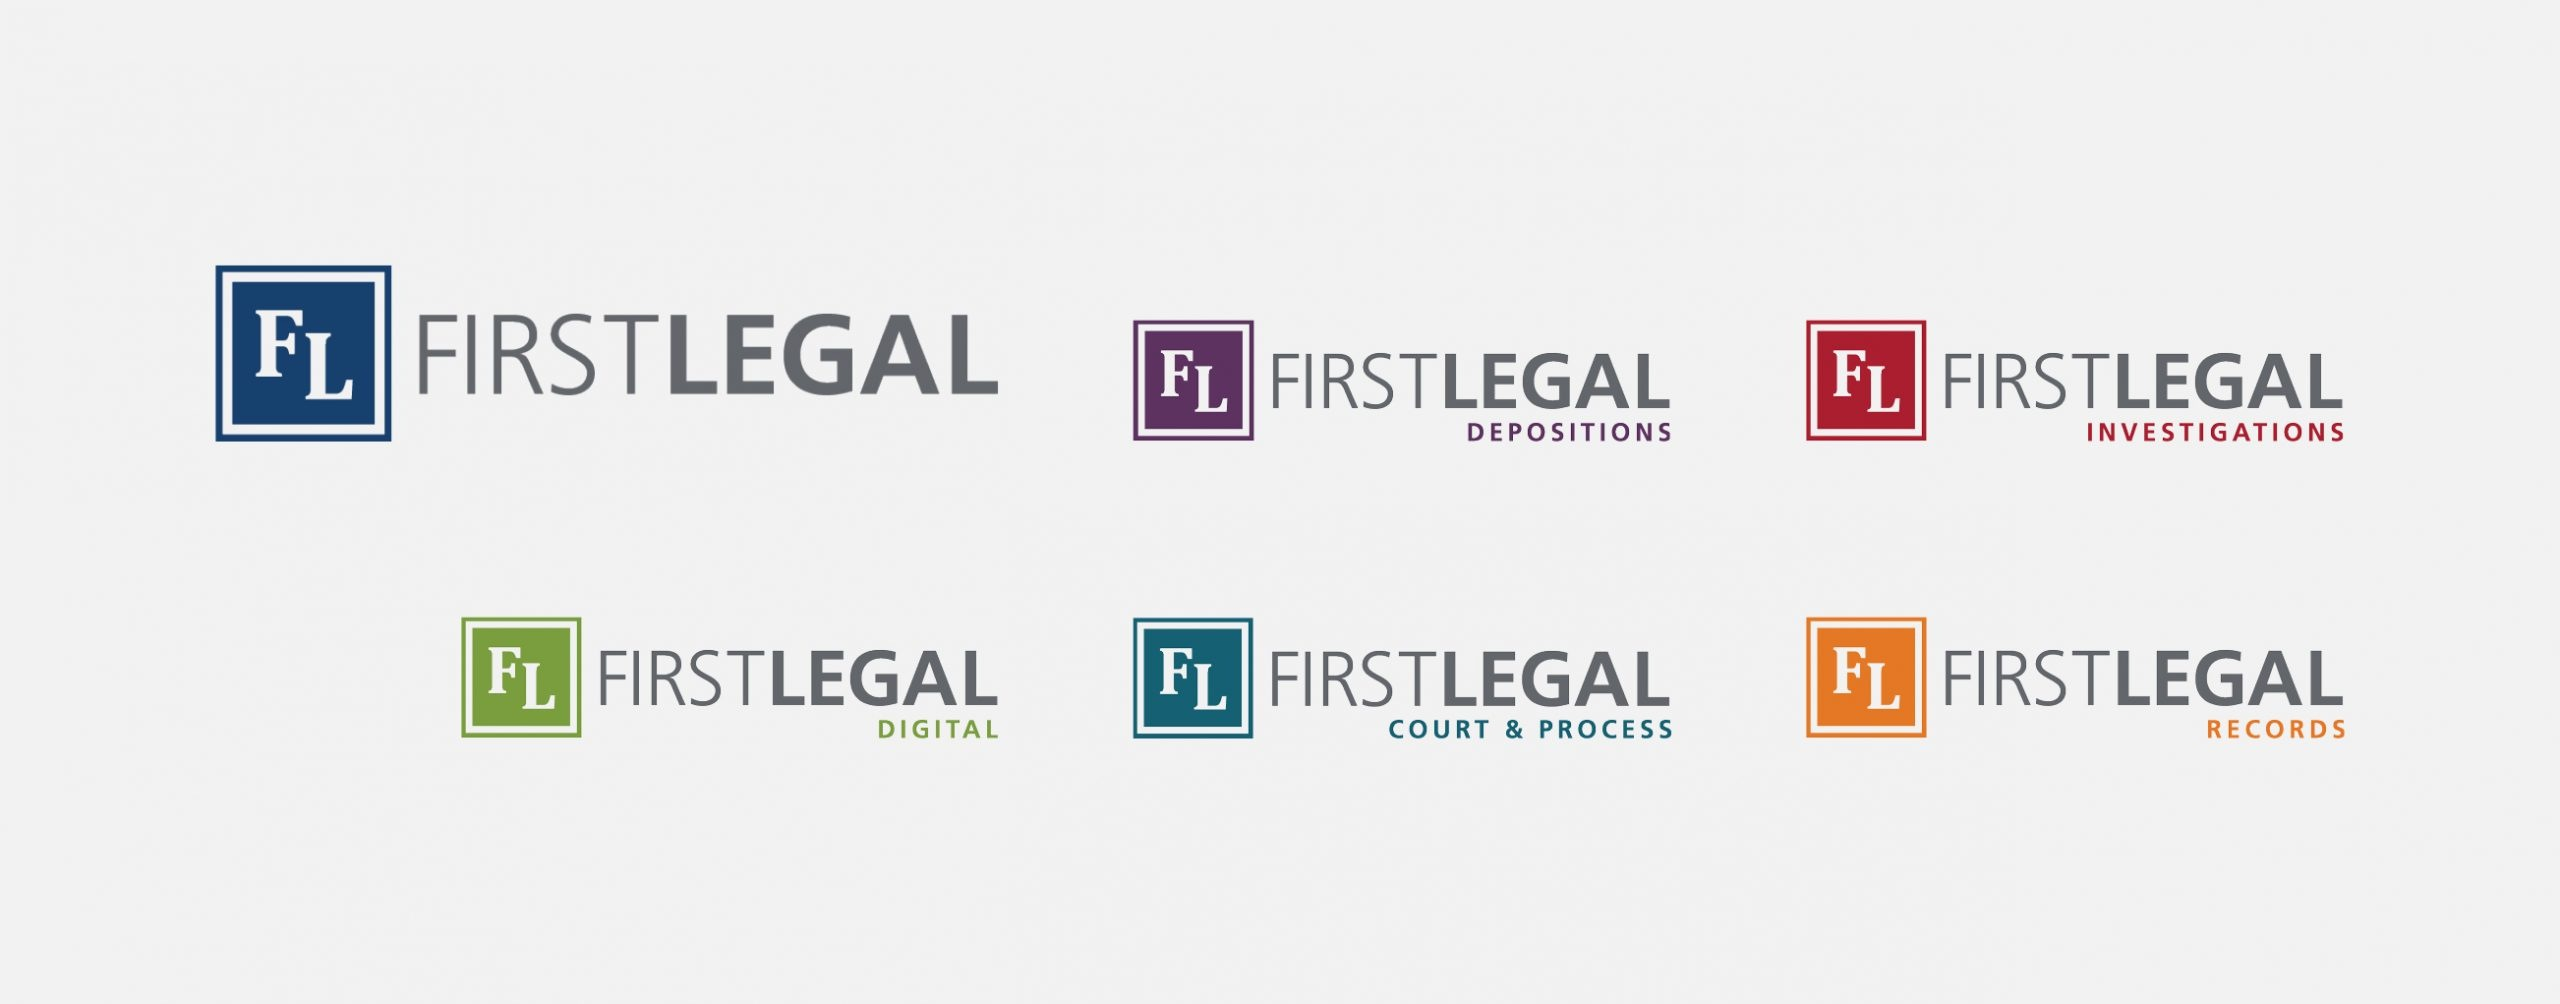 Built out First Legal department logos